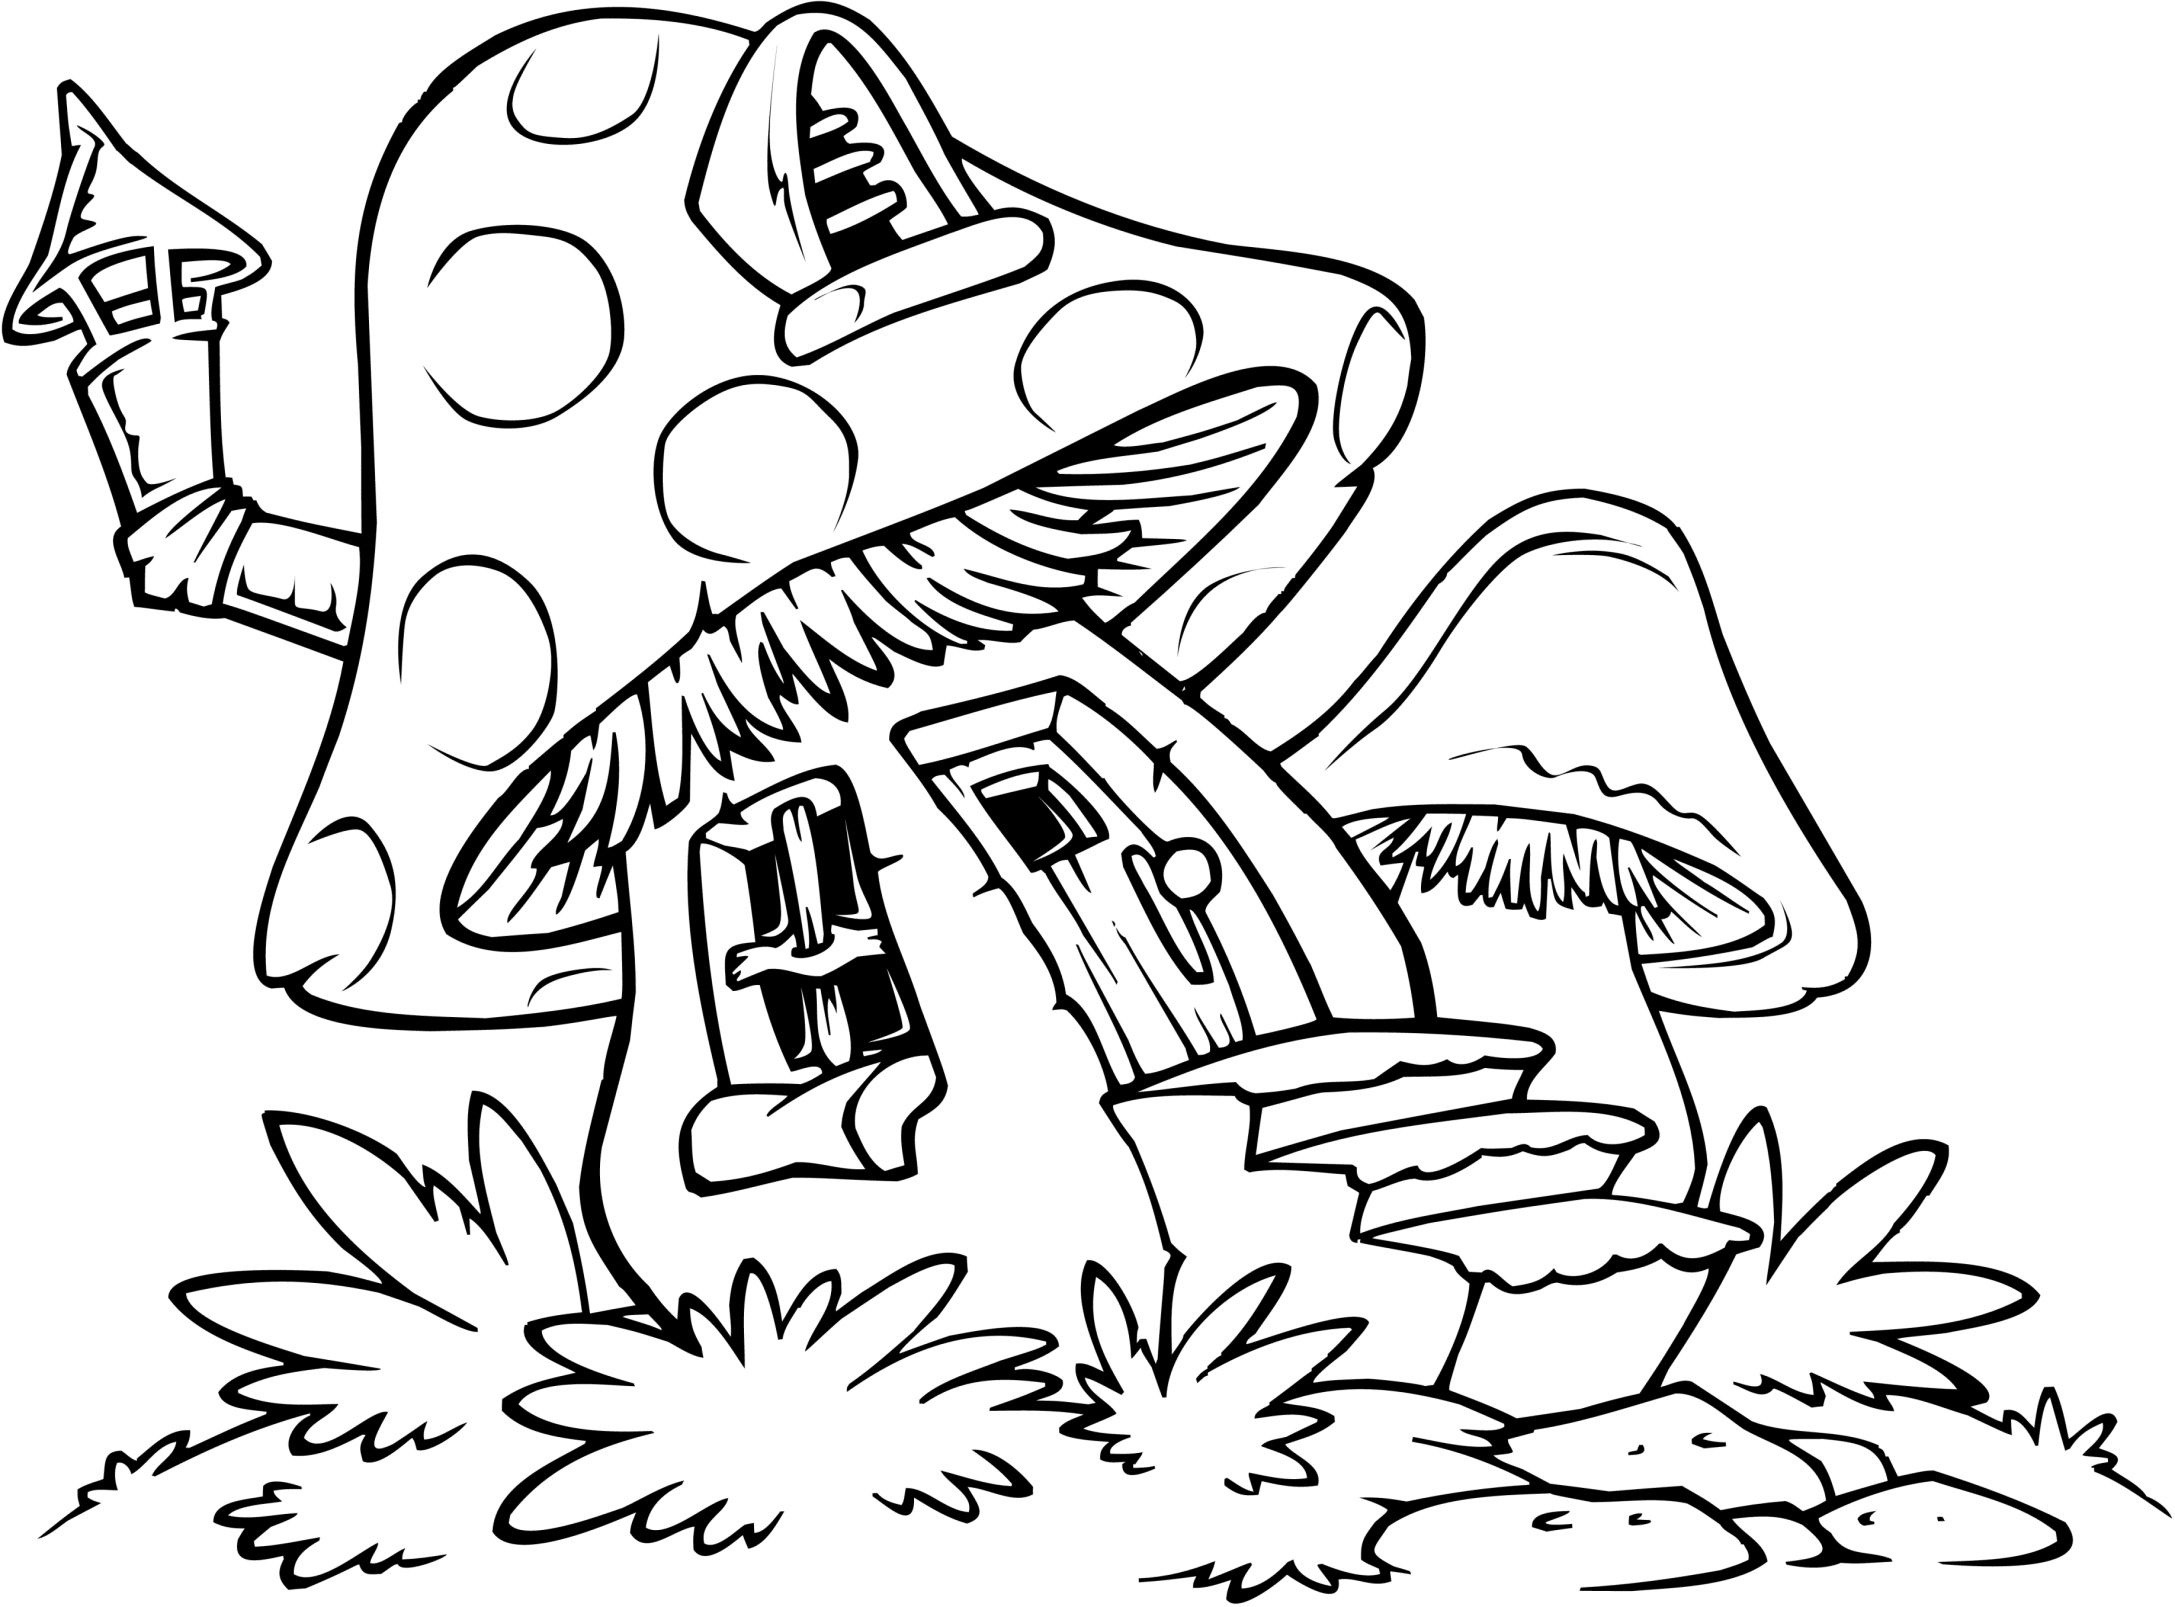 Mushroom House Coloring Pages | Coloring Pages | Easy Coloring Pages - Free Printable Mushroom Coloring Pages